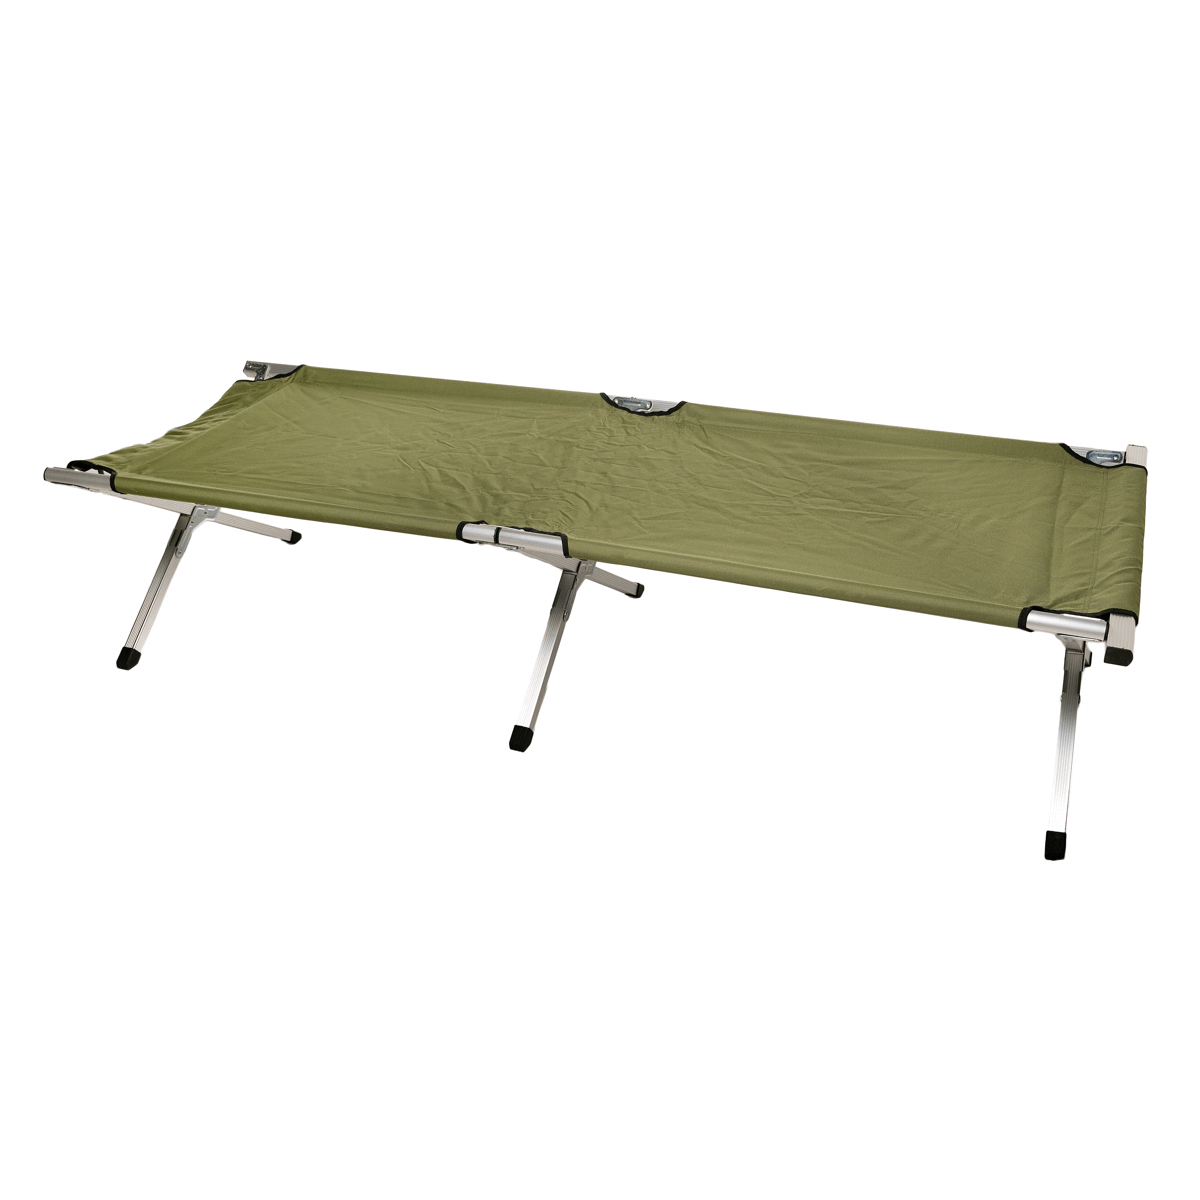 Camping Bed with Bag in Green 190 x 65 x 42cm